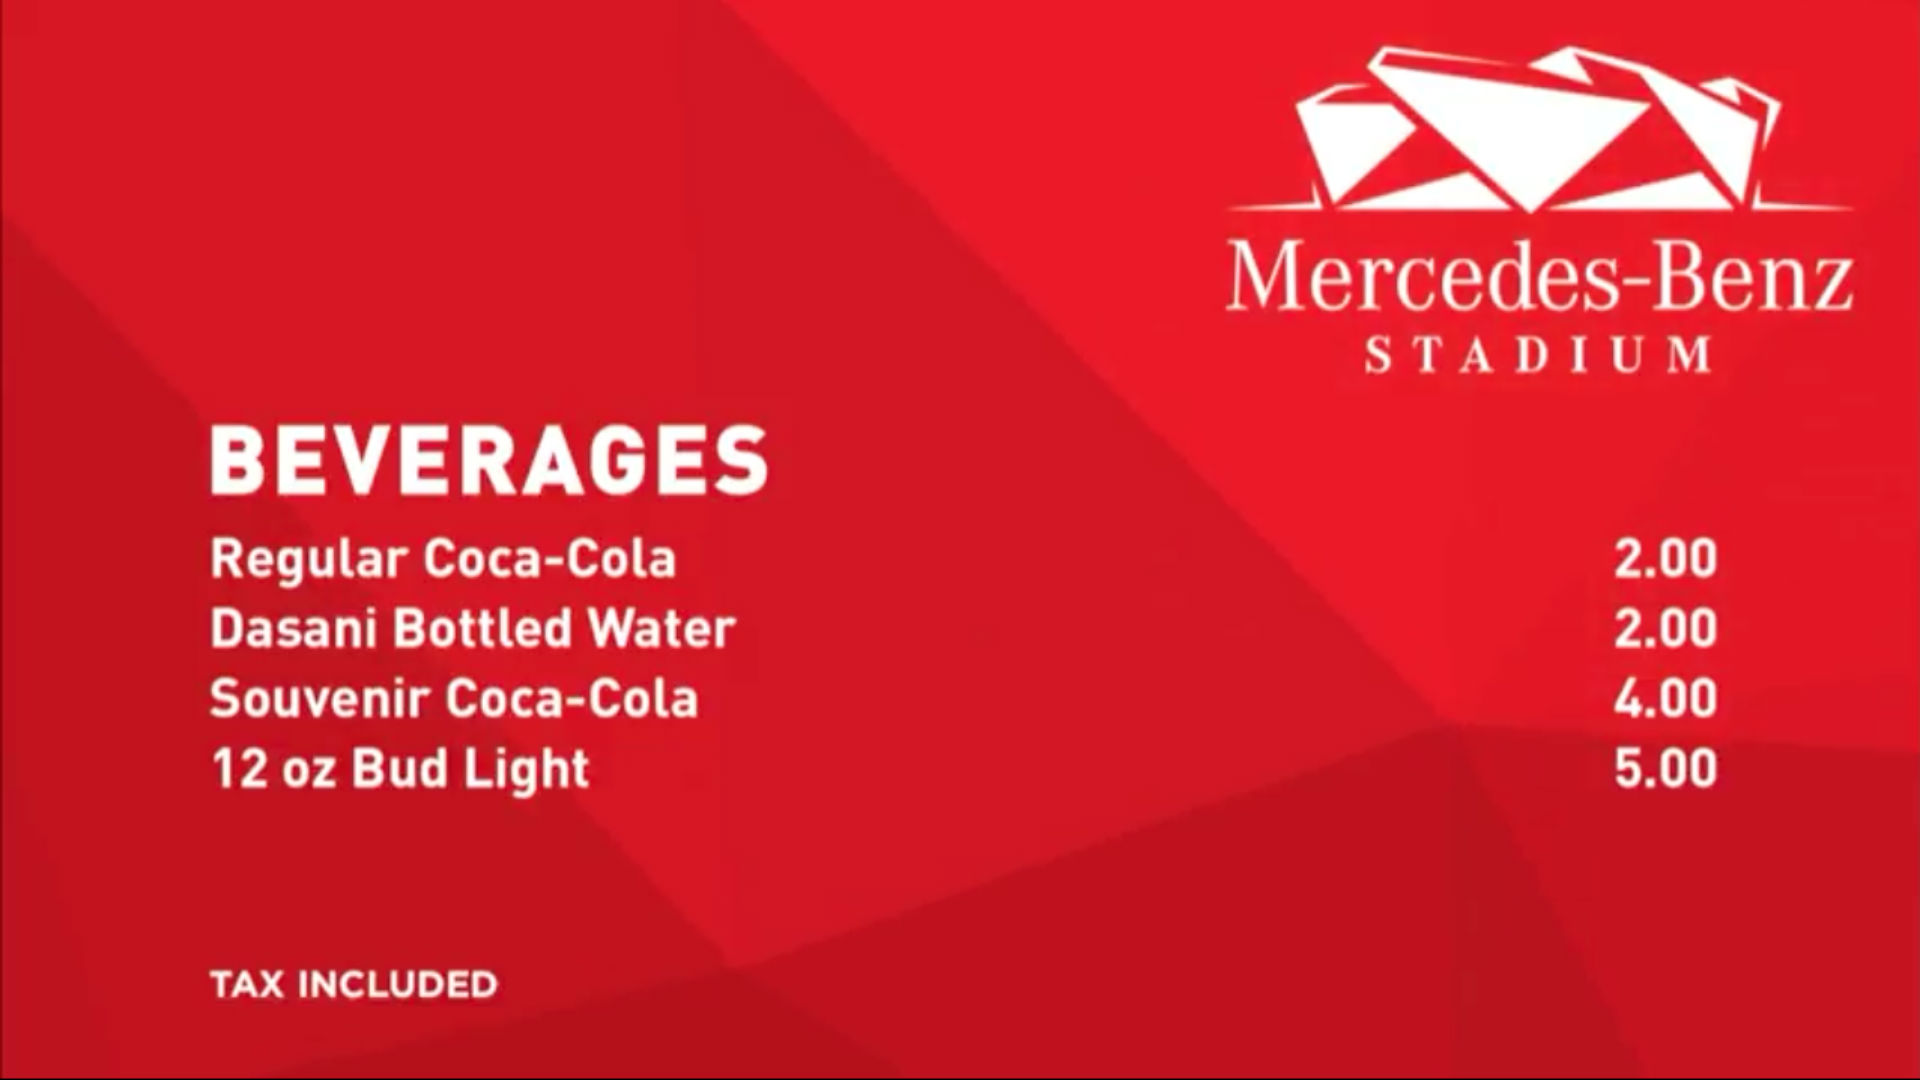 Falcons hey maybe fans should be able to afford food at for Mercedes benz average price